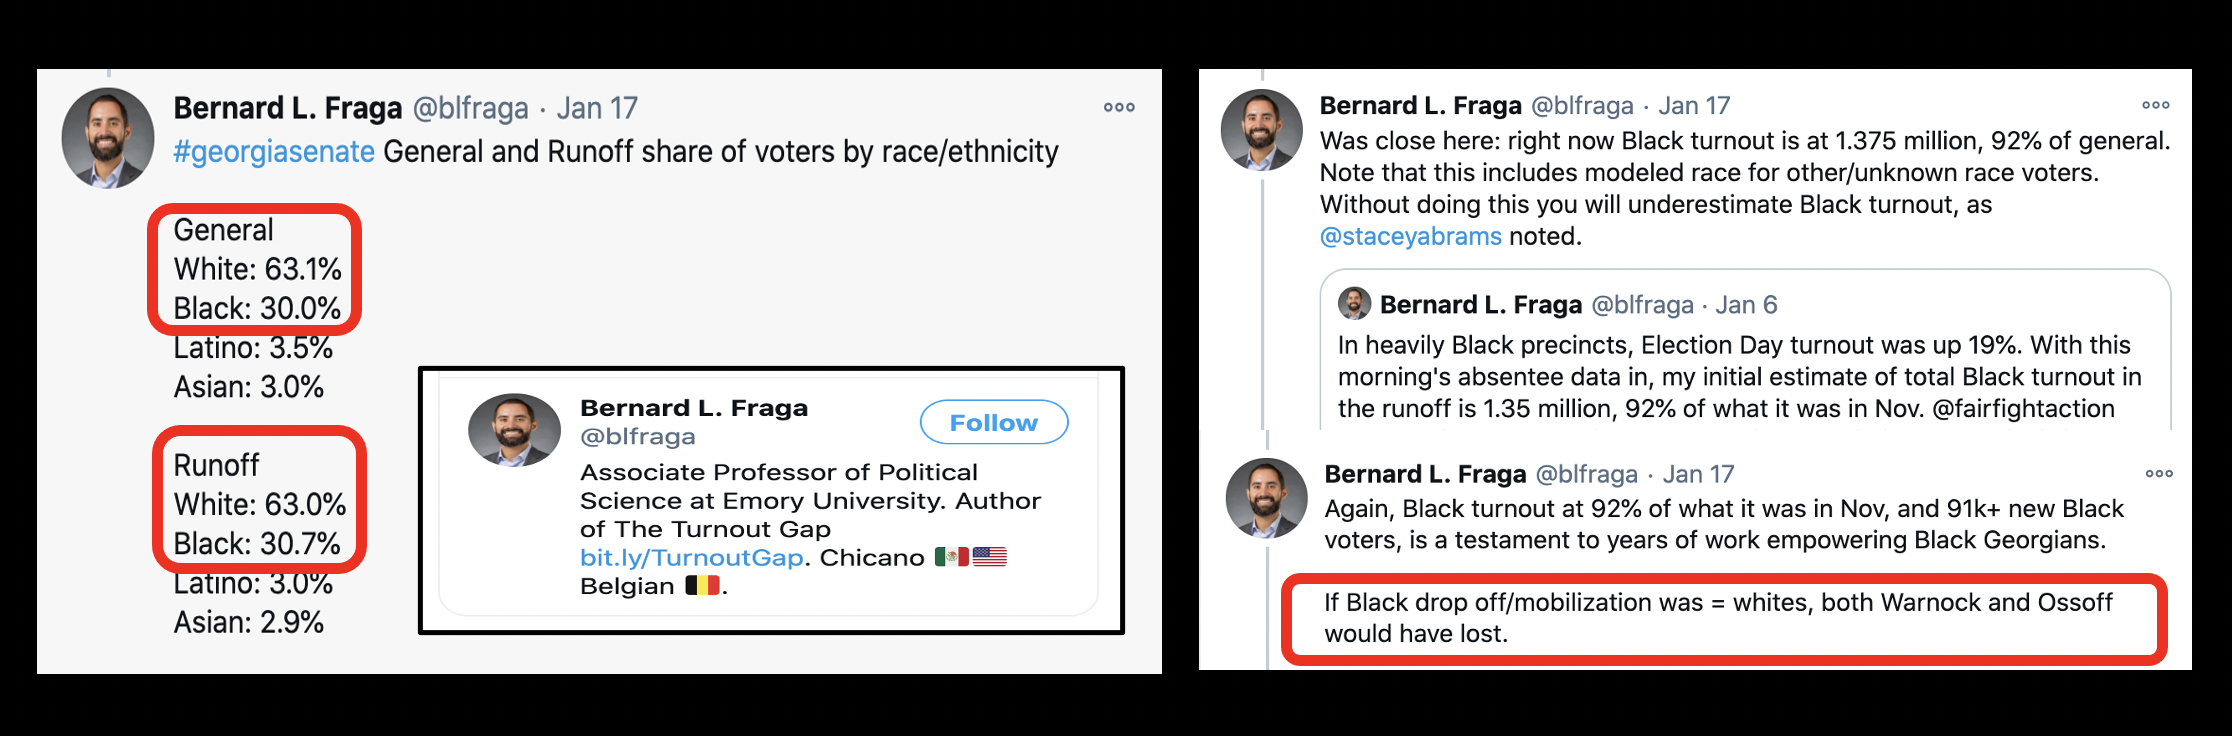 Research by Assoc. Professor Bernard Fraga shows how critical Black voter turnout was in the election of Warnock and Ossoff